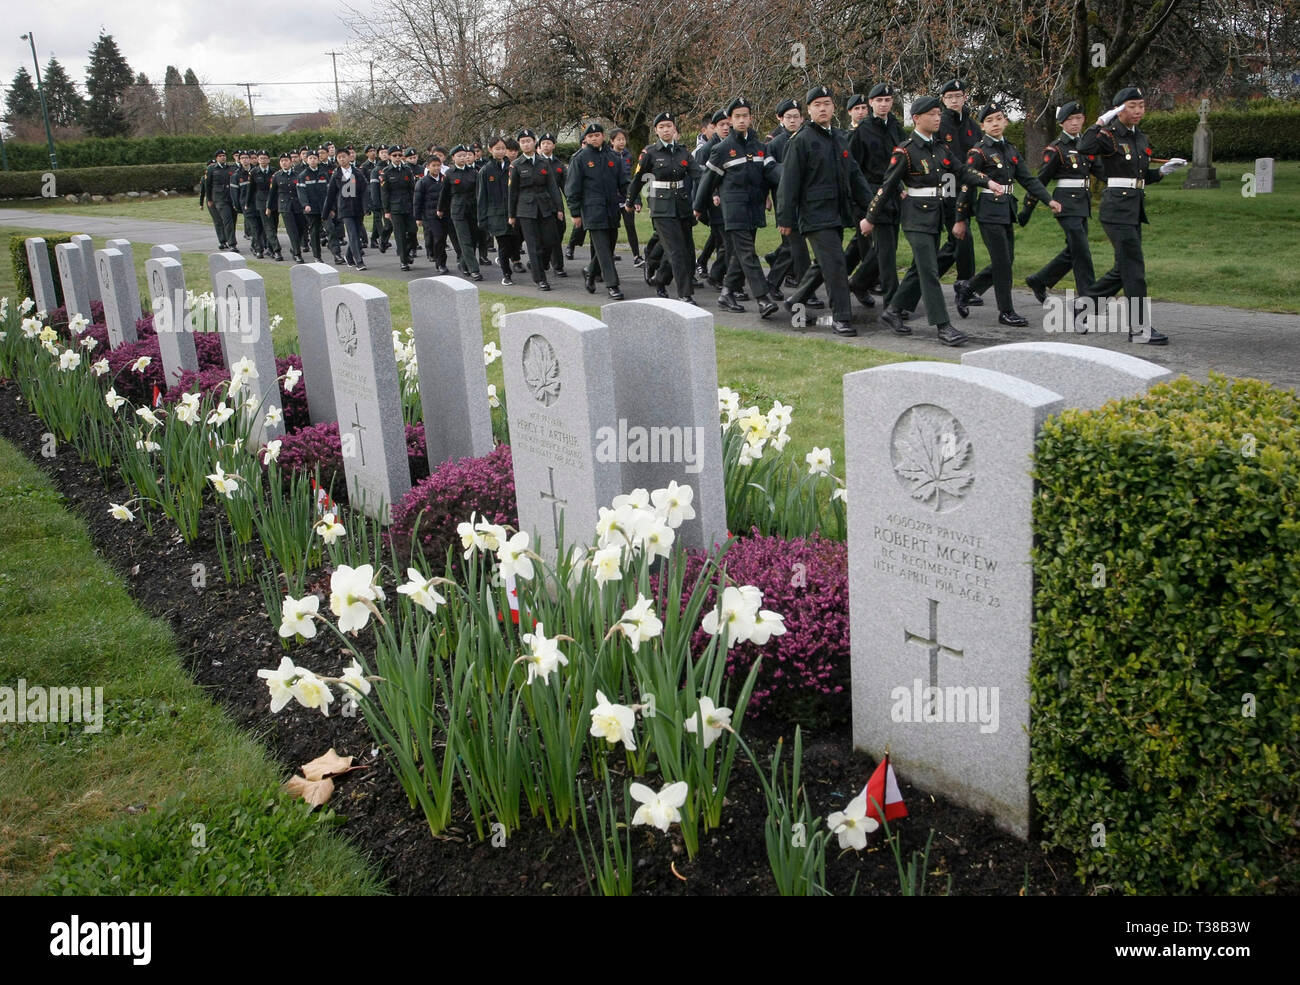 Vancouver, Canada  7th Apr, 2019  Army cadets march to